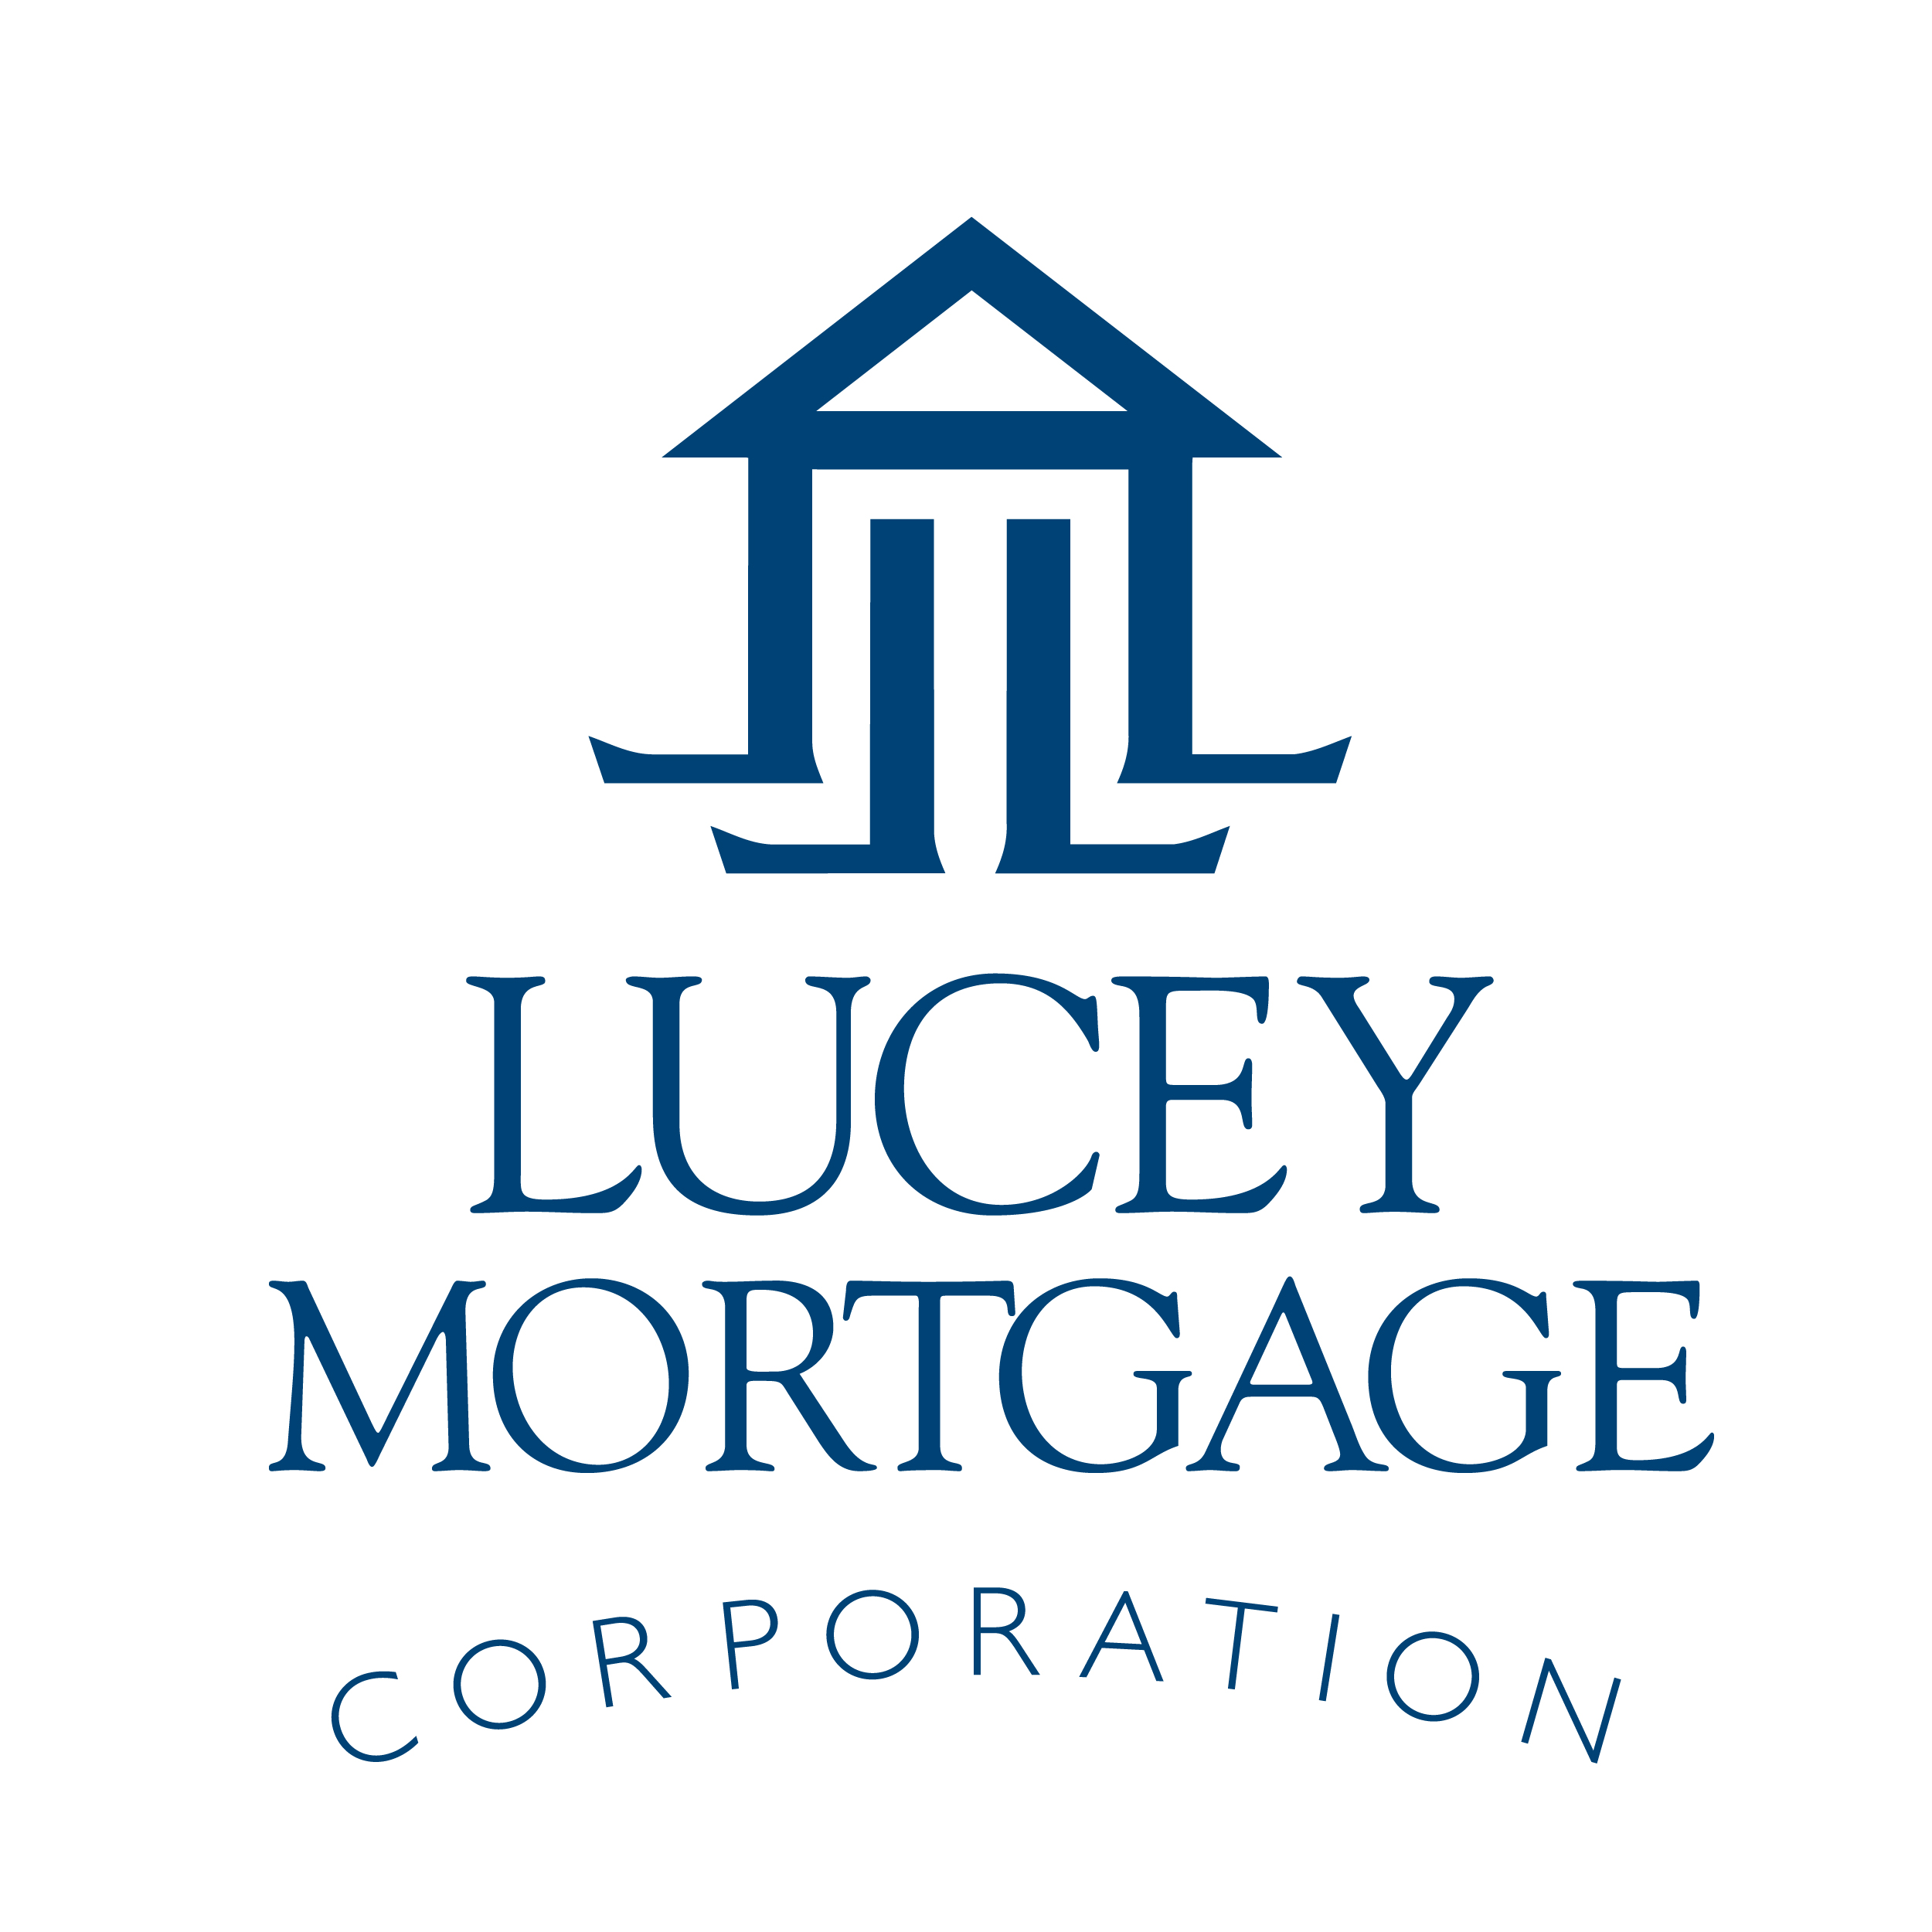 Lucey Mortgage Company